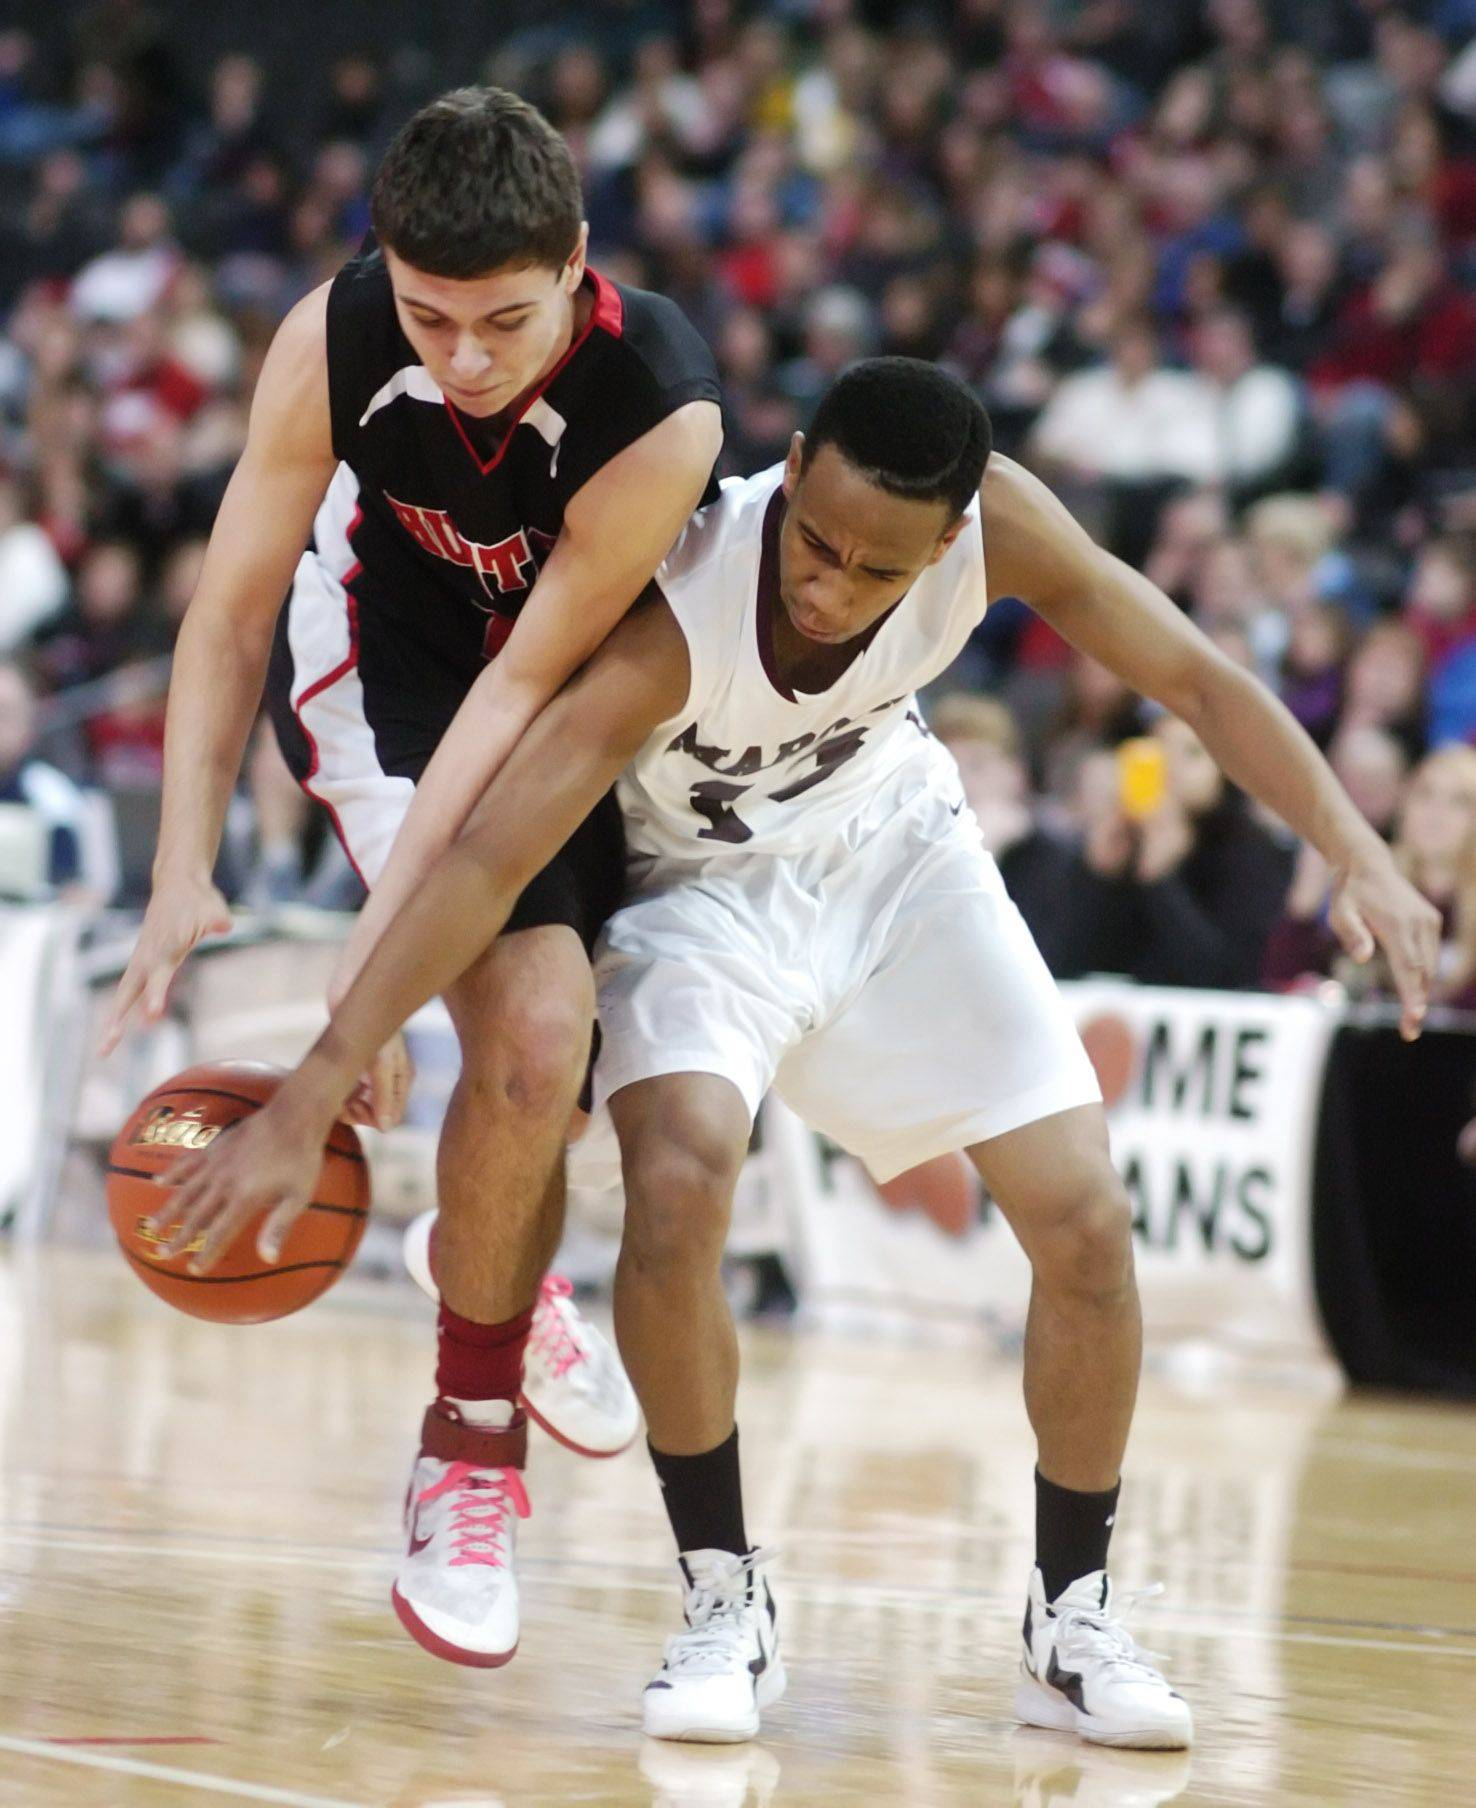 Elgin's Cortez Scott, right, prevents a move to the basket by Huntley's Ryan Craig during Saturday's High School Hoops Showdown game at the Sears Centre in Hoffman Estates.